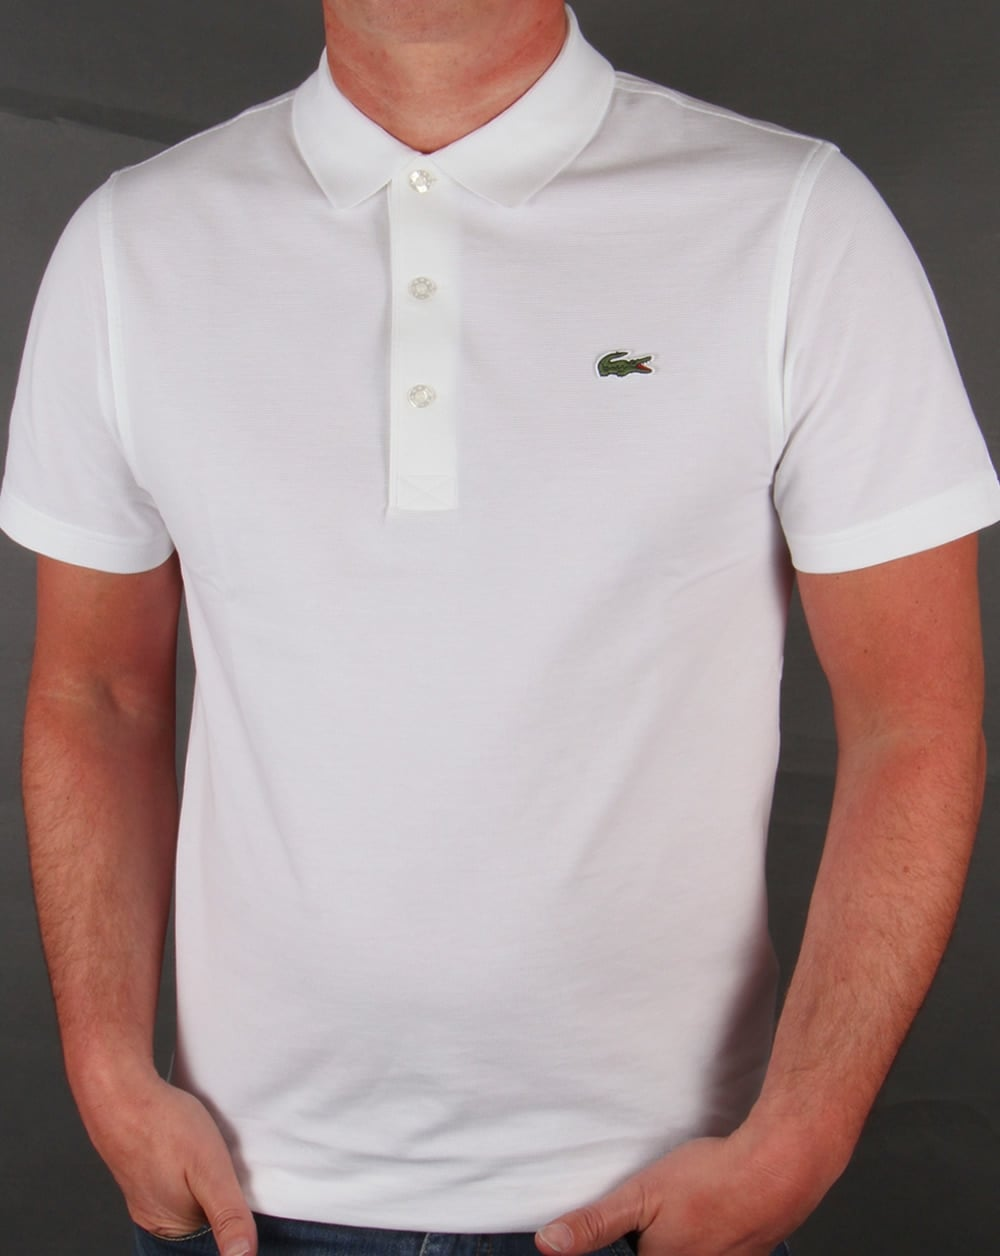 90d567a4f77b Lacoste Ultra-lightweight Knit Polo Shirt White